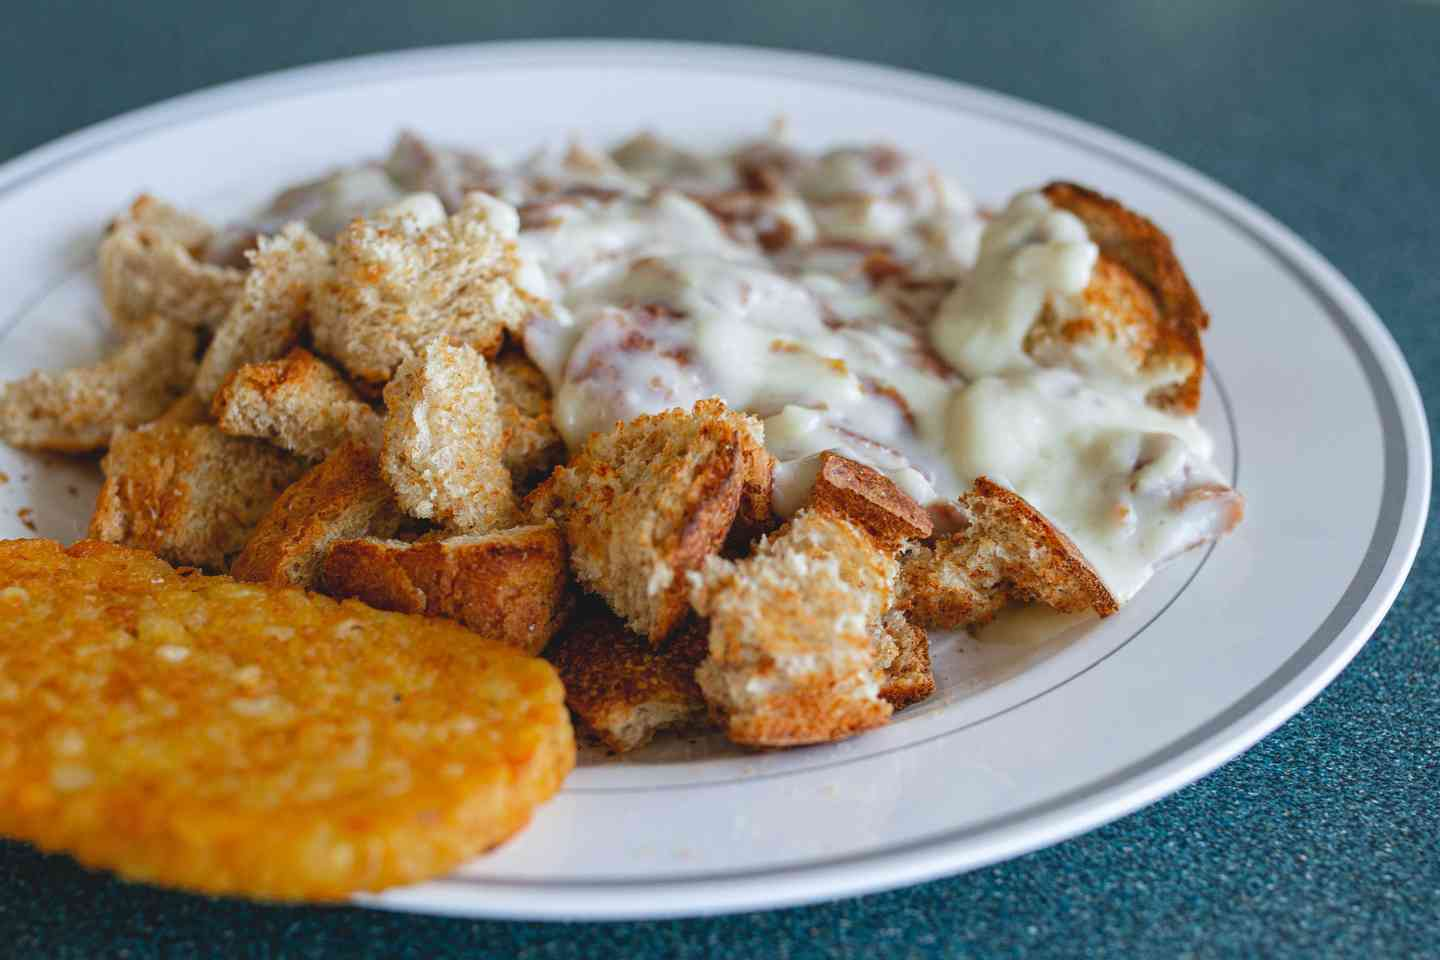 Cream Chipped Beef